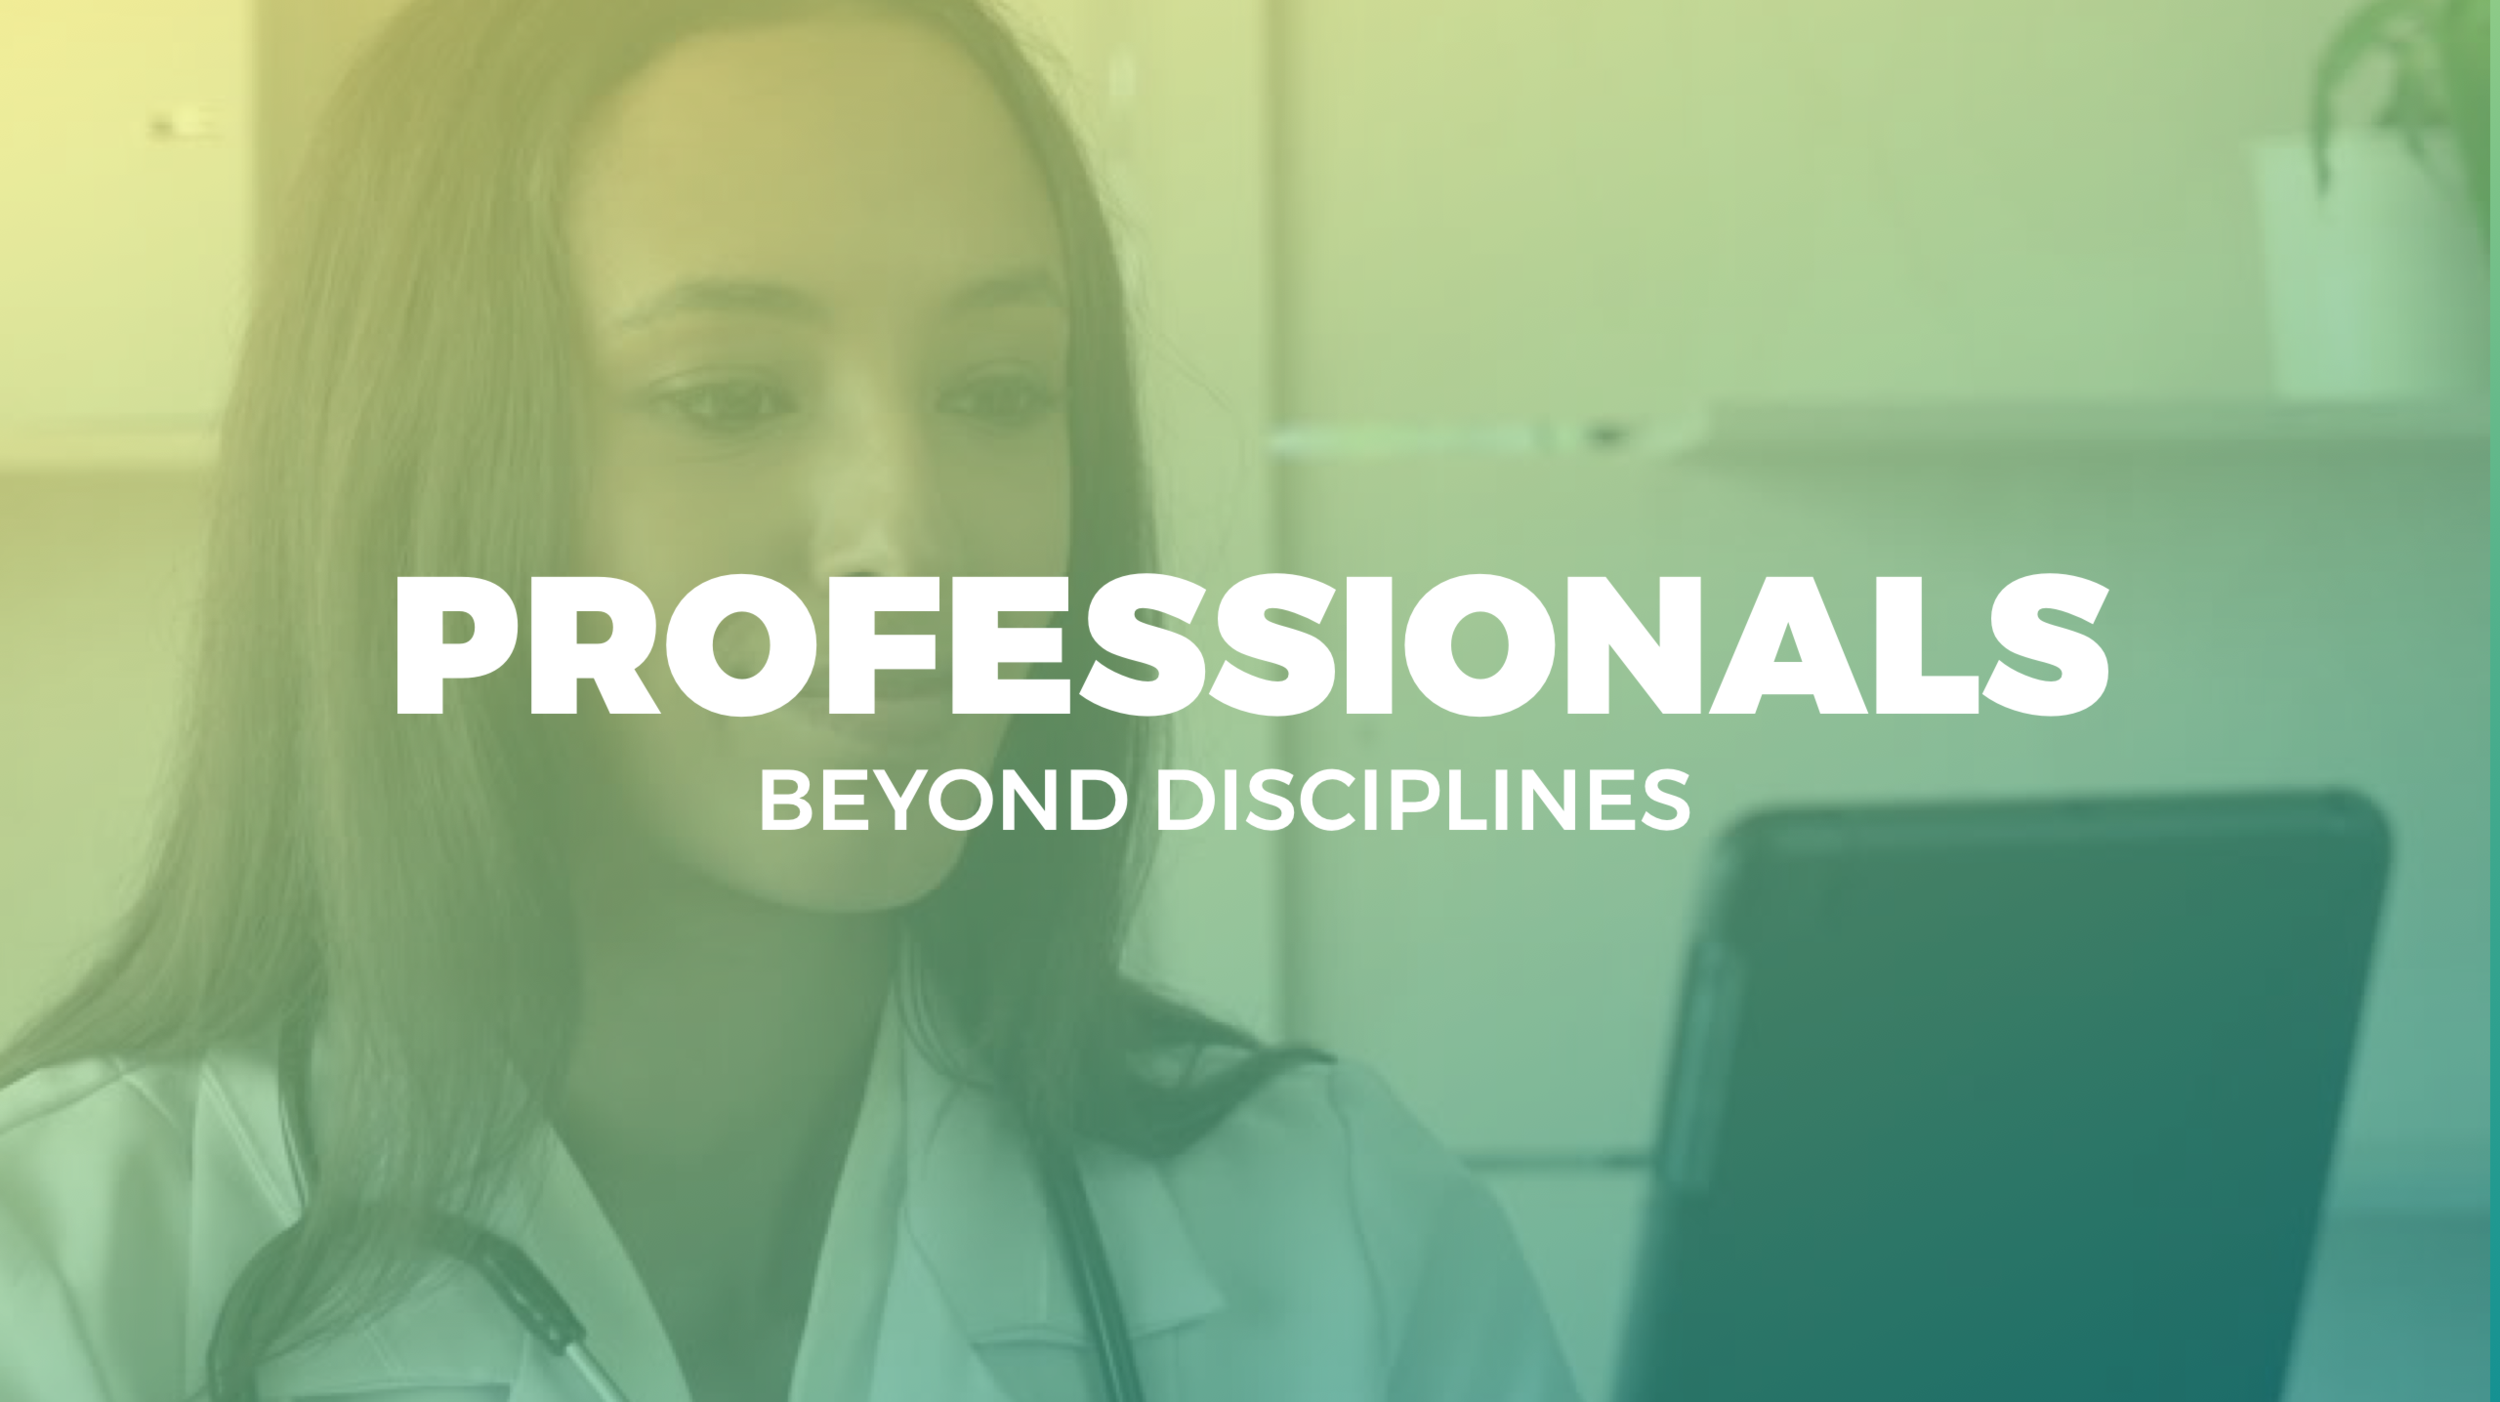 Discover the value in inter-professional learning, and learn from projects across disciplines.